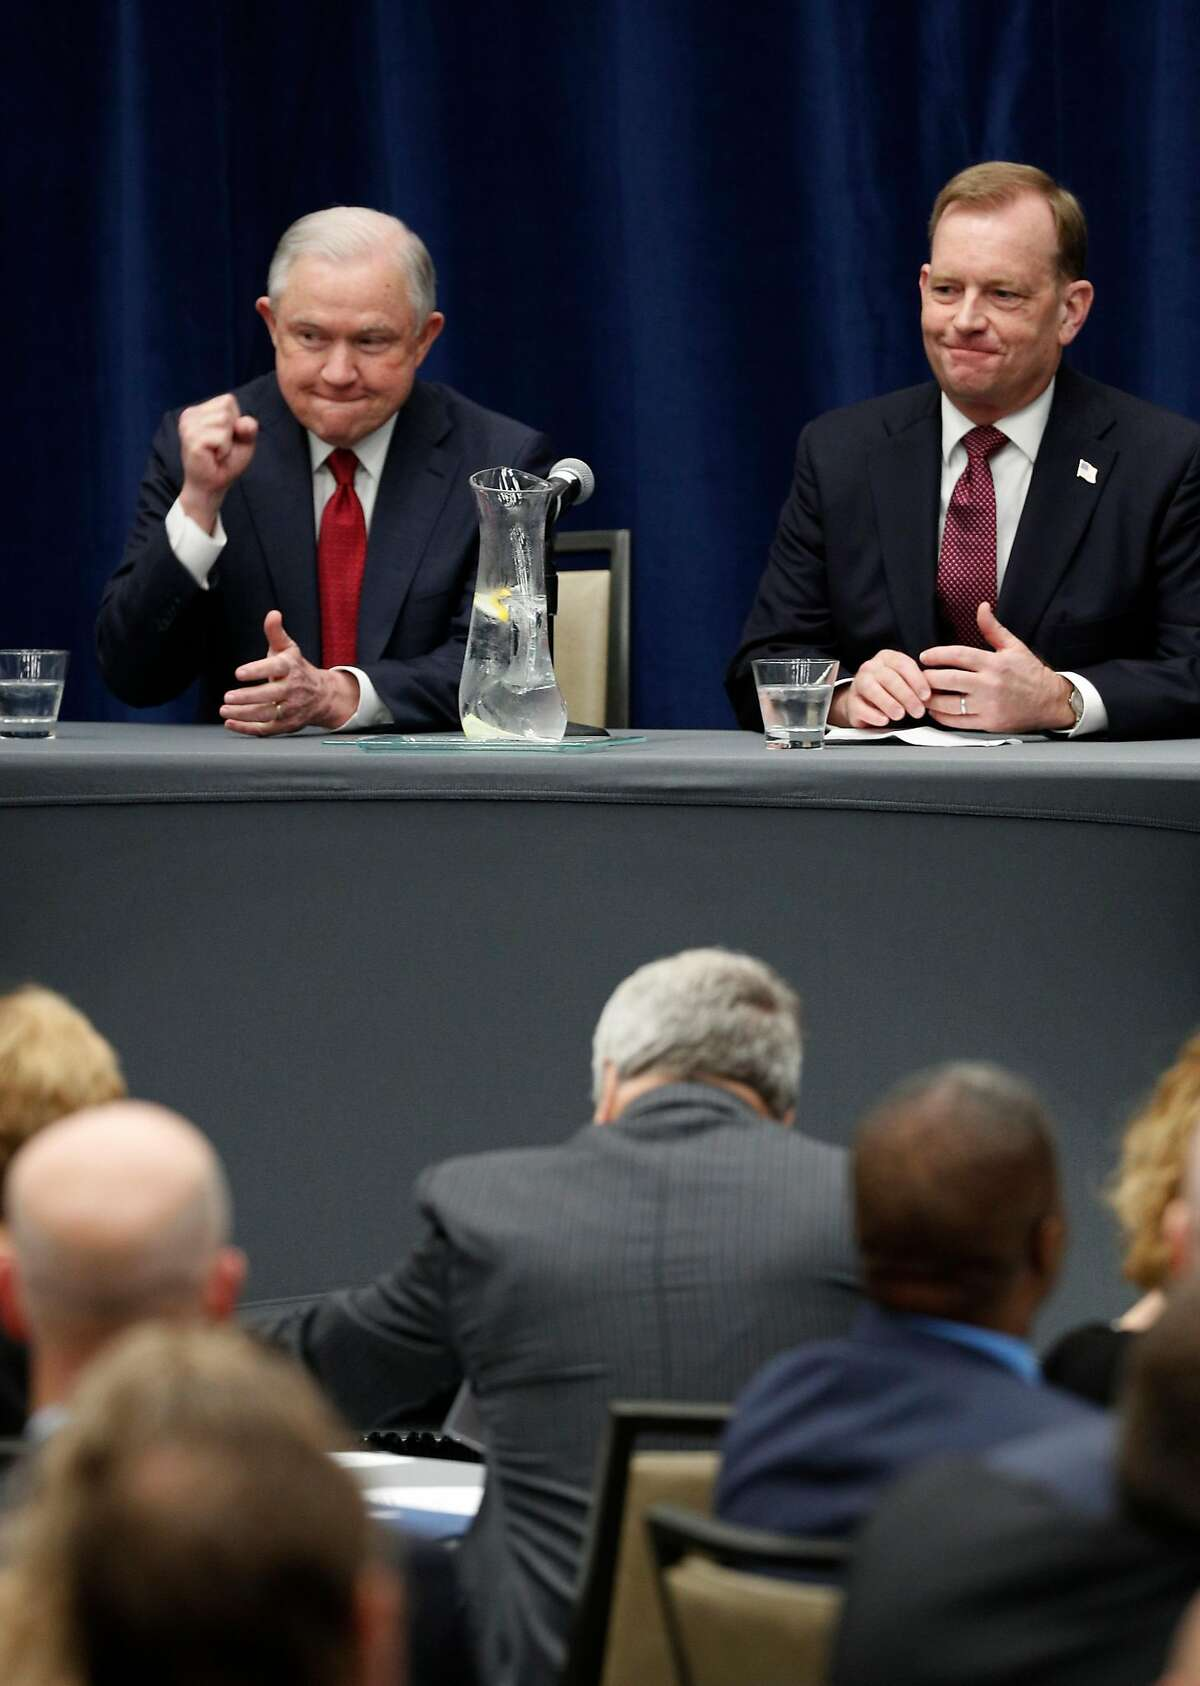 U.S. Attorney General Jeff Sessions before delivering remarks to the California Peace Officer's Association at the Kimpton Sawyer Hotel in Sacramento, Calif., on Wed. Mar. 7, 2018. Sessions is joined by by McGregor Scott, U.S. Attorney Eastern district and past California Peace Officer's Association president John McGinnes.